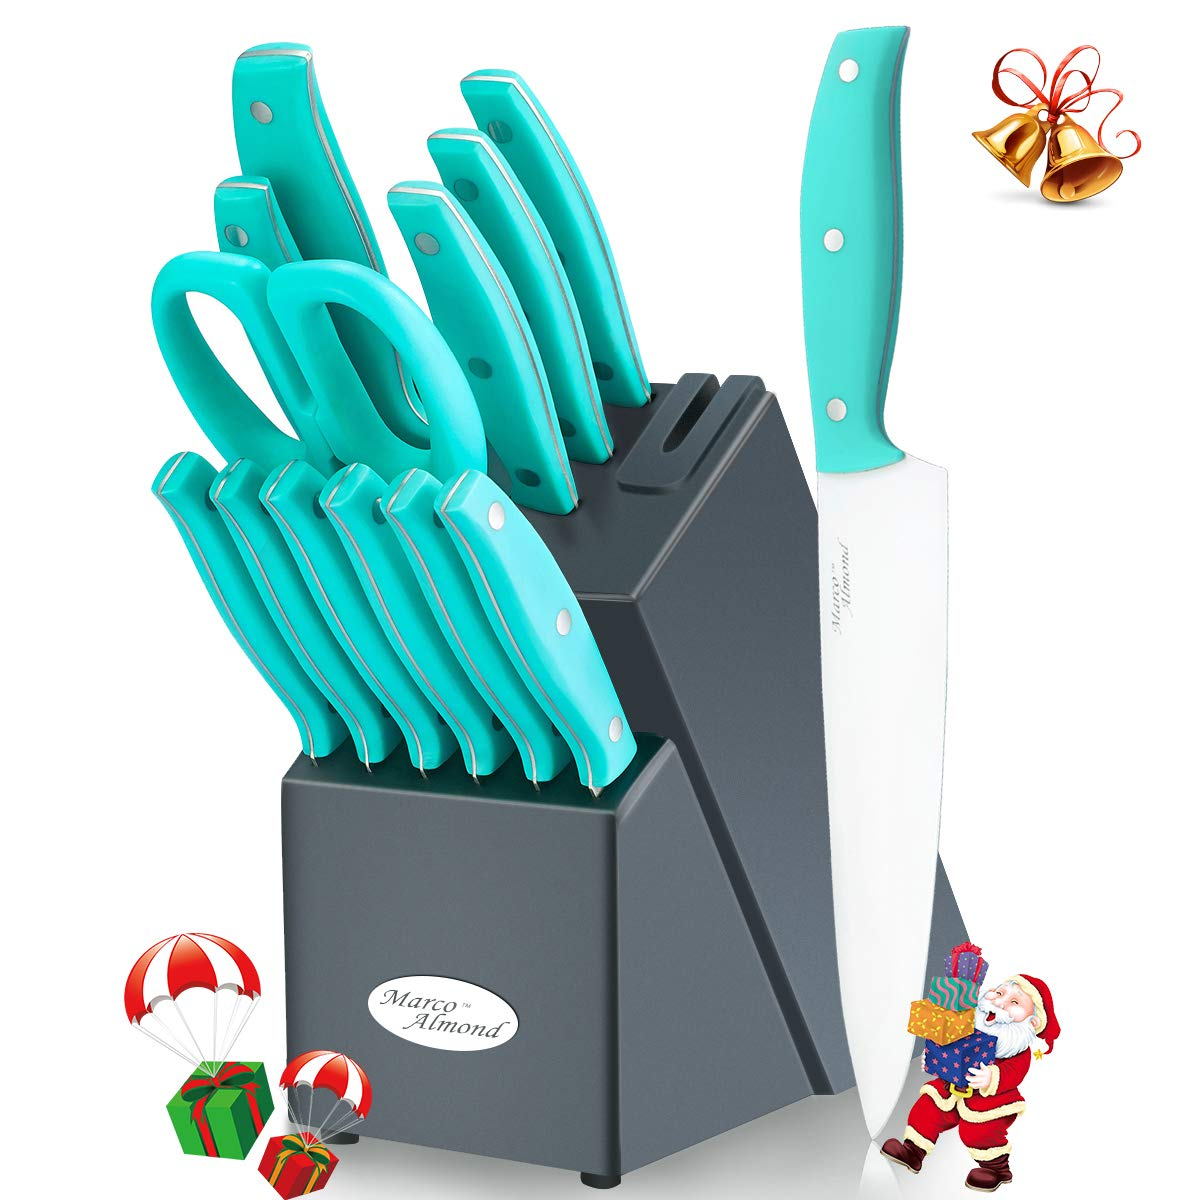 Knife Block Set, Kitchen Knife Set with Block, KYA24 14 Pieces Japanese Steel Knife Set, Knives Set with Block and in-Block Sharpener, with Steak Chef Knife Kitchen Scissor FDA Certified Turquoise by Marco Almond